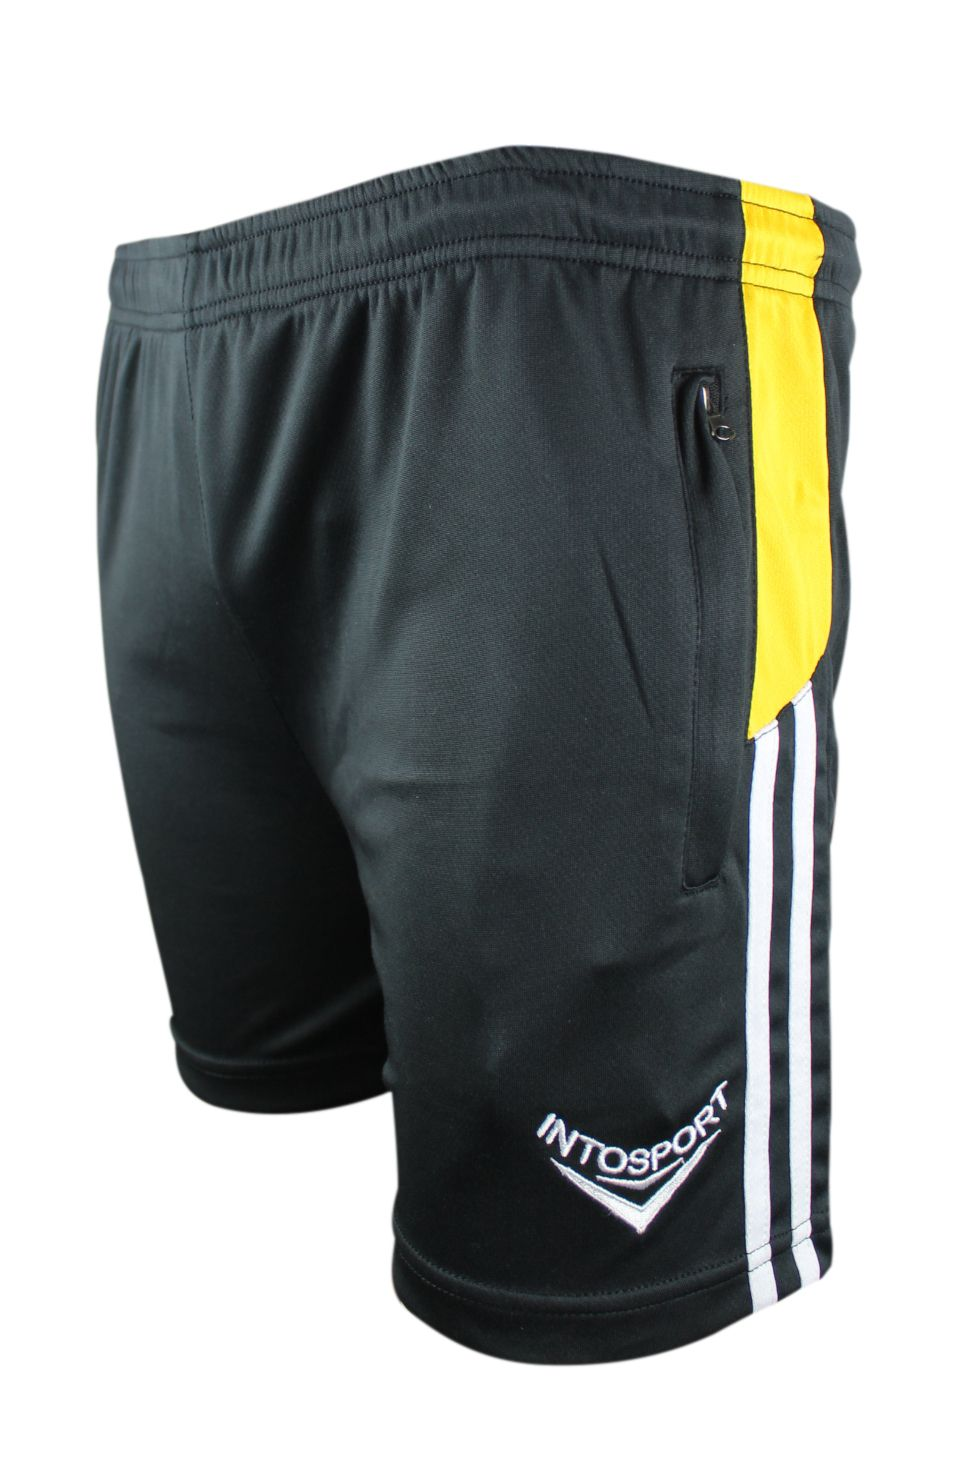 BLACK LEISURE SHORTS SIDE.jpg